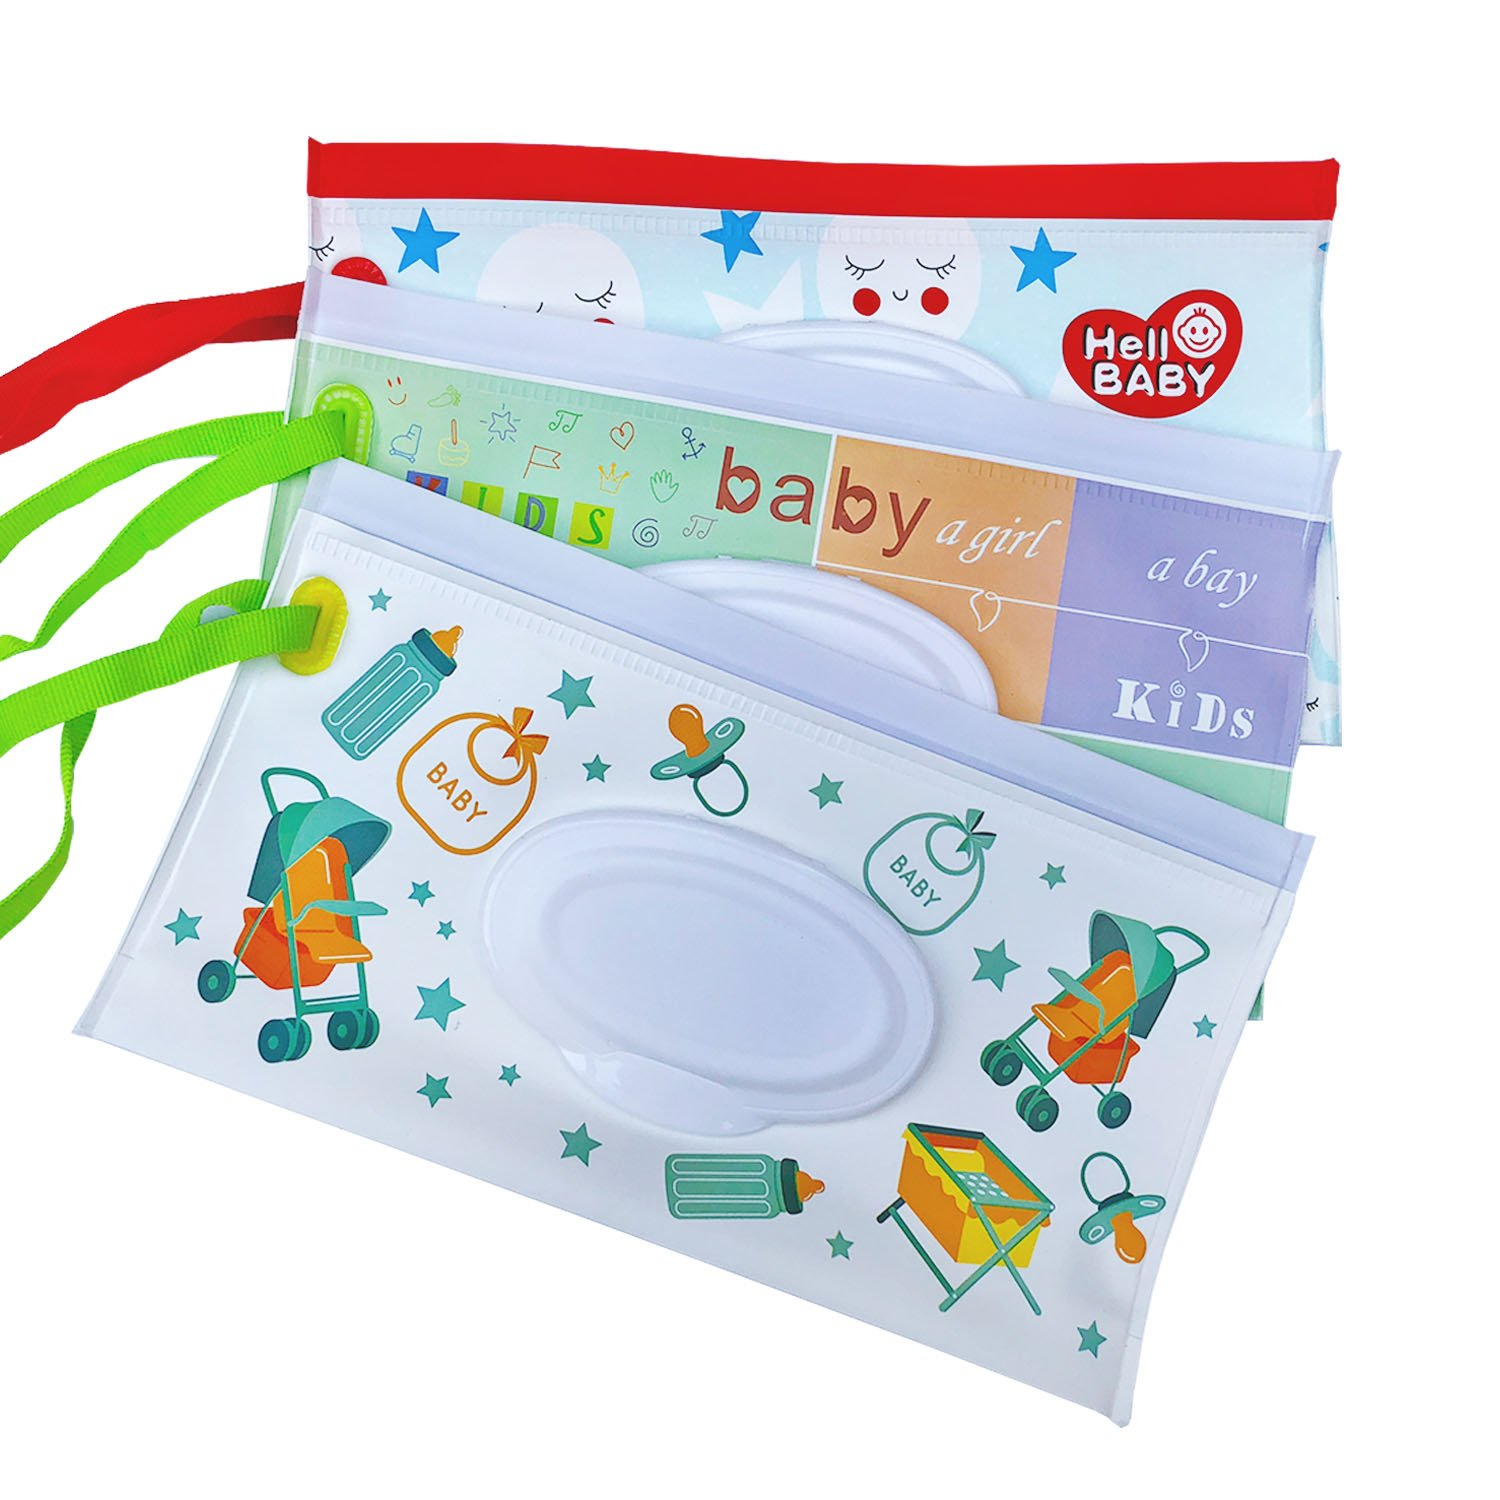 Reusable Wet Wipe Pouch Travel Wipes Dispenser for Baby Eco Friendly Wipe Pouches, Great for Travel (3 Pack) (GG)